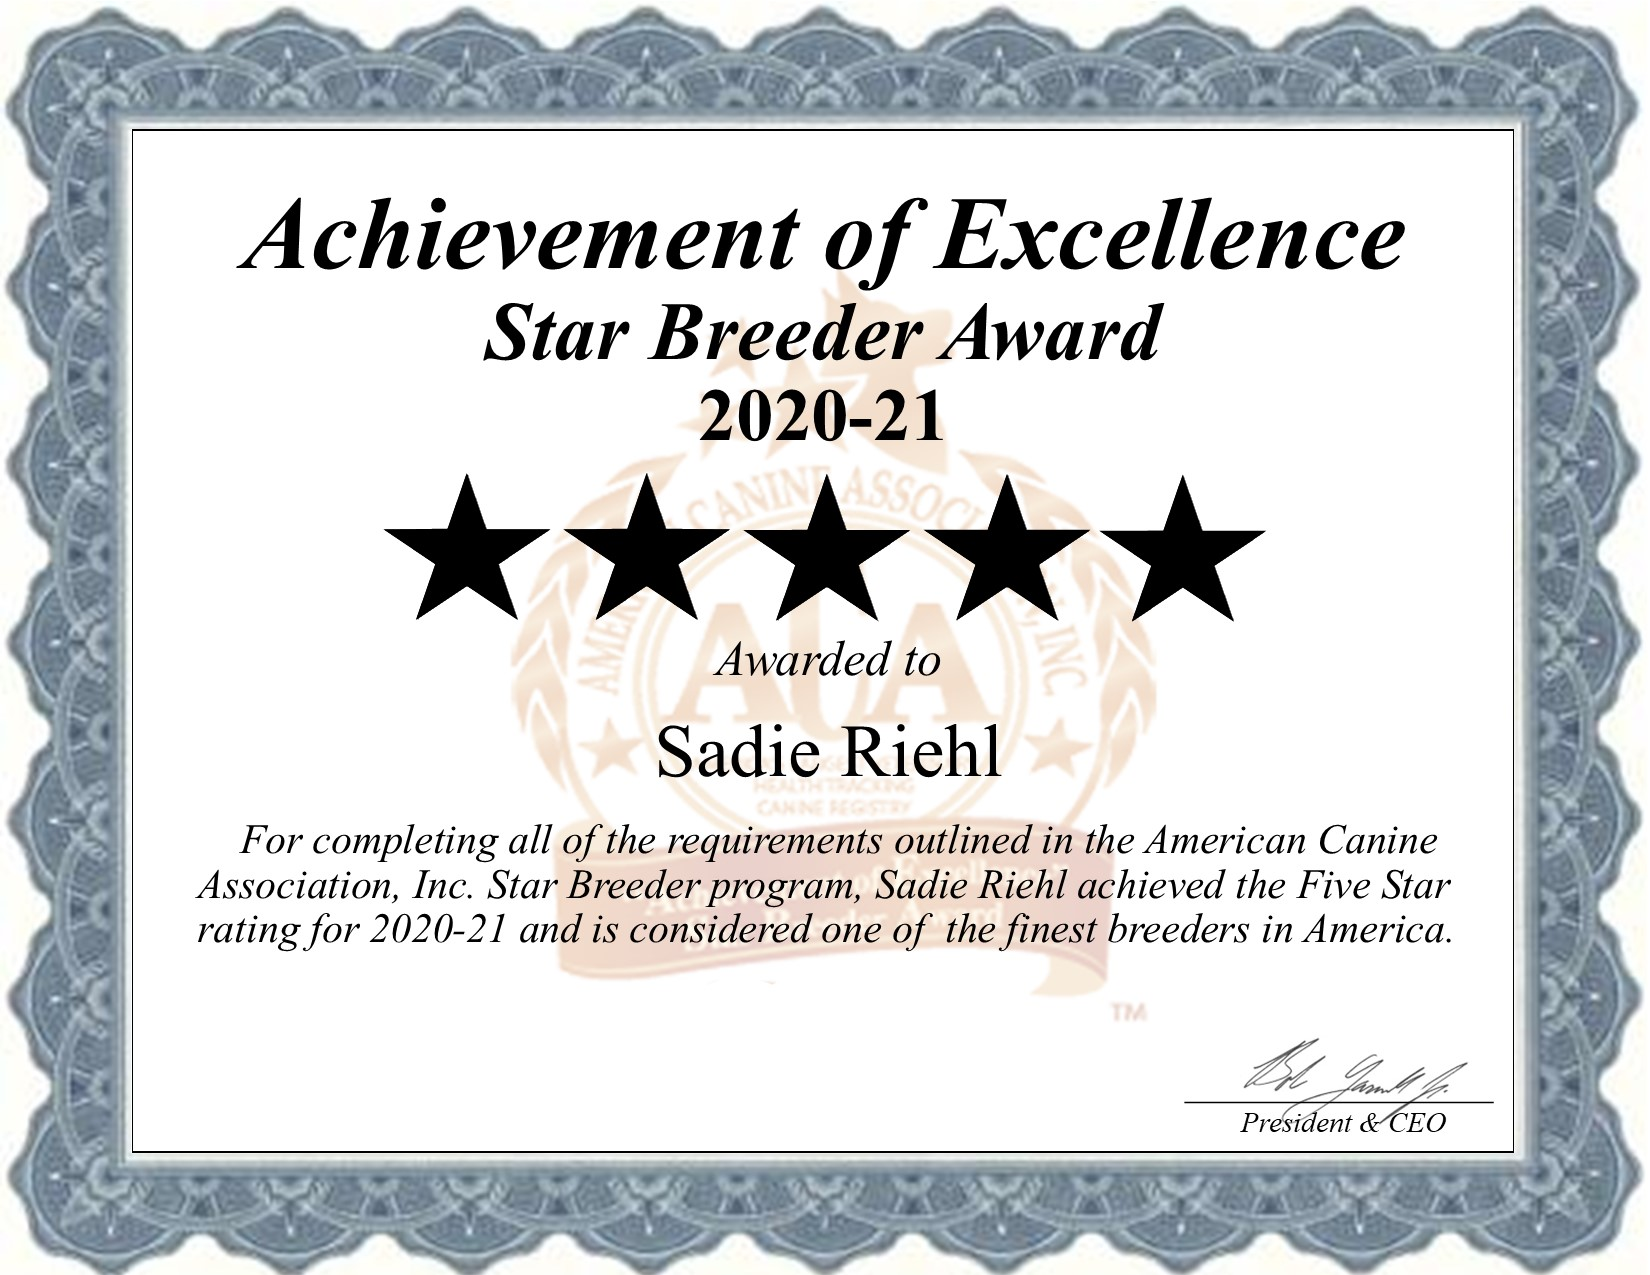 Sadie, Riehl, dog, breeder, star, certificate, Sadie-Riehl, Gap, PA, Pennsylvania, puppy, dog, kennels, mill, puppymill, usda, 5-star, aca, ica, registered, golden, doodles